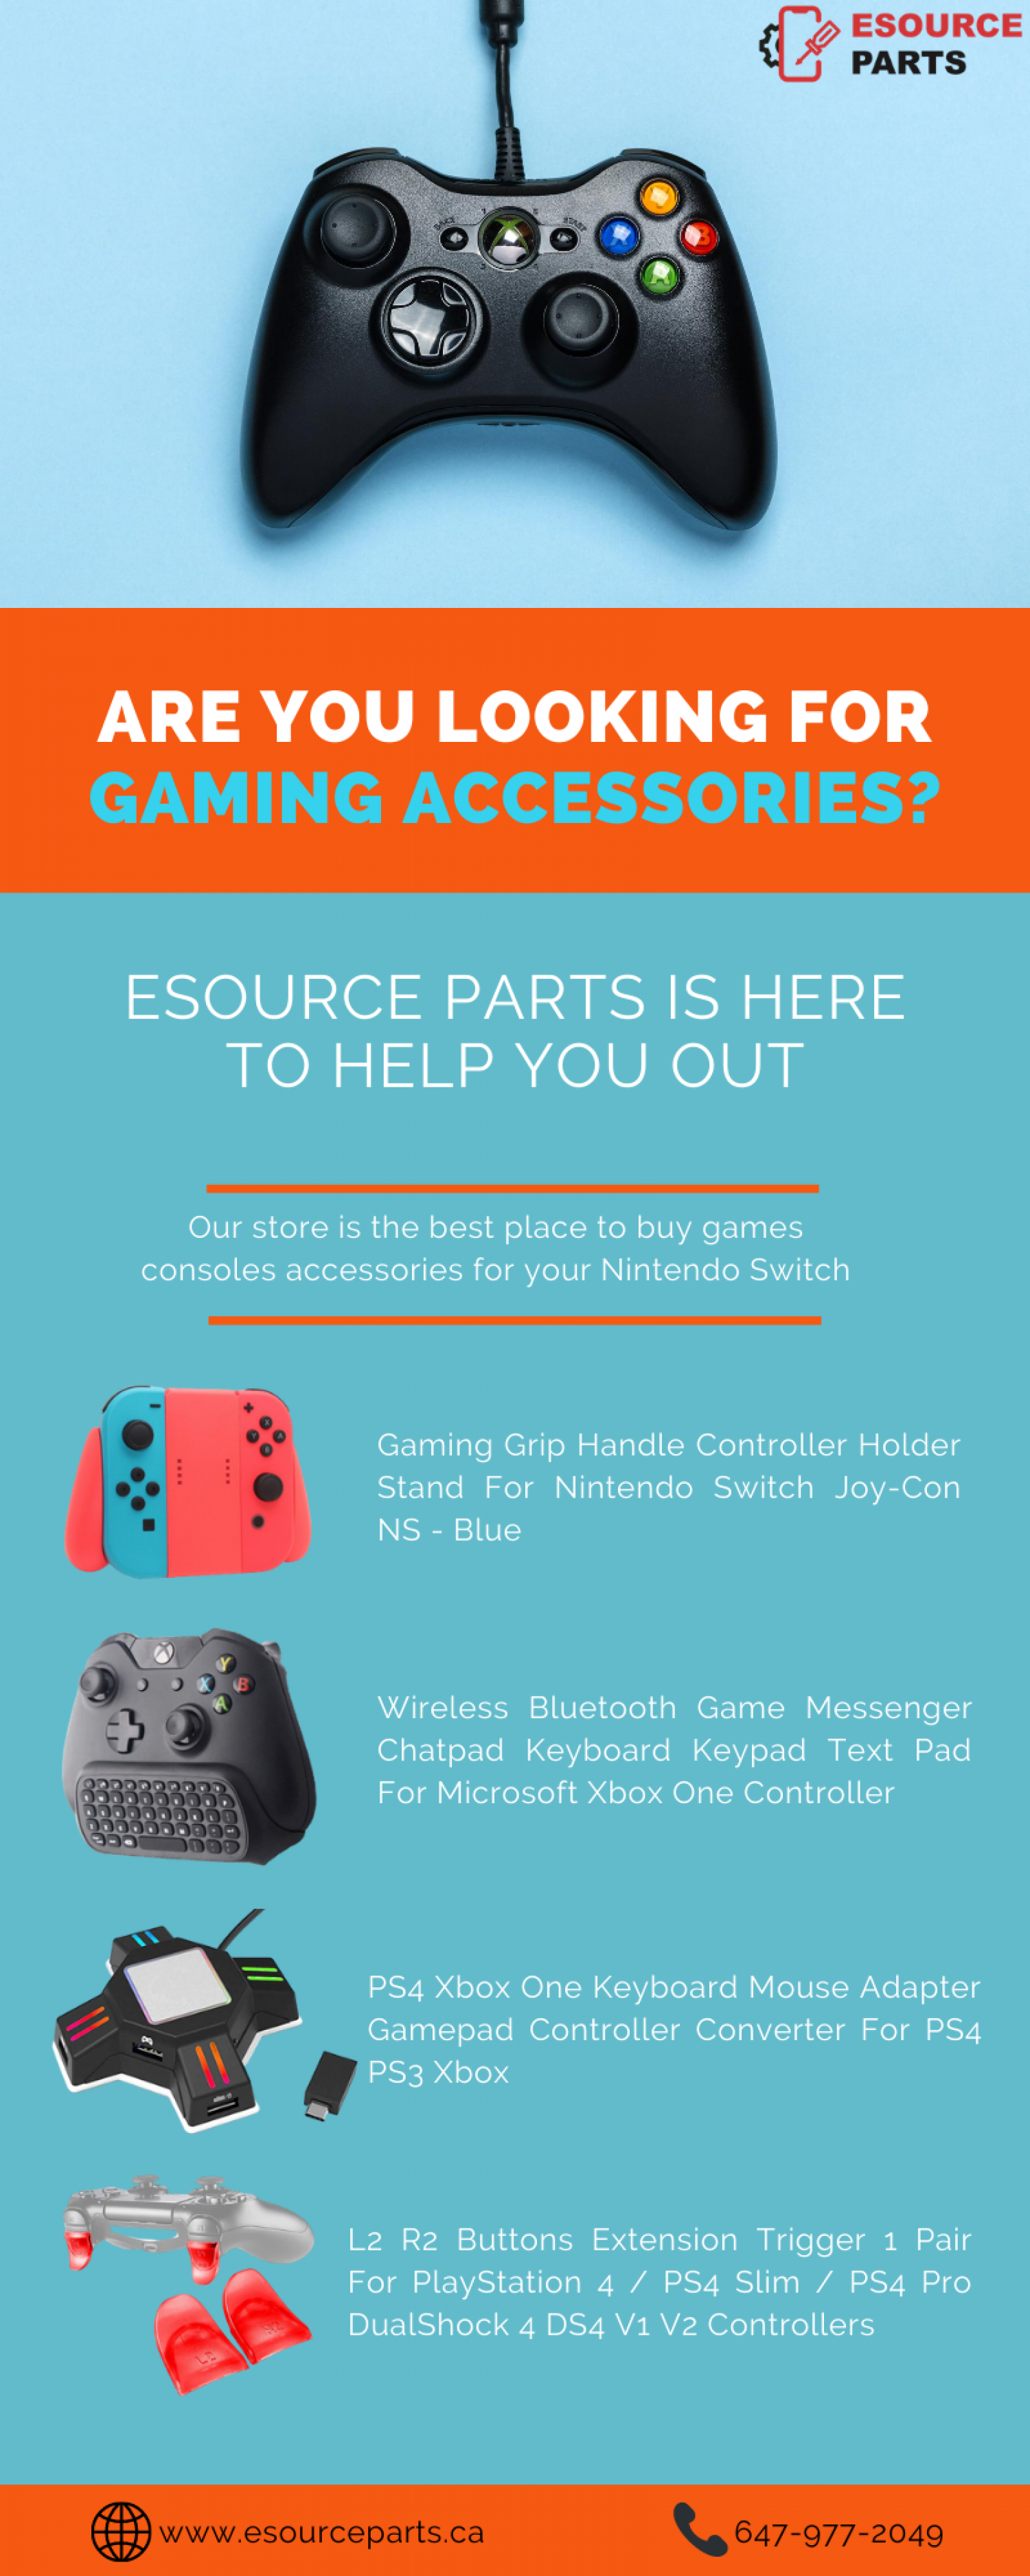 Game console accessories for your Nintendo Switch Infographic